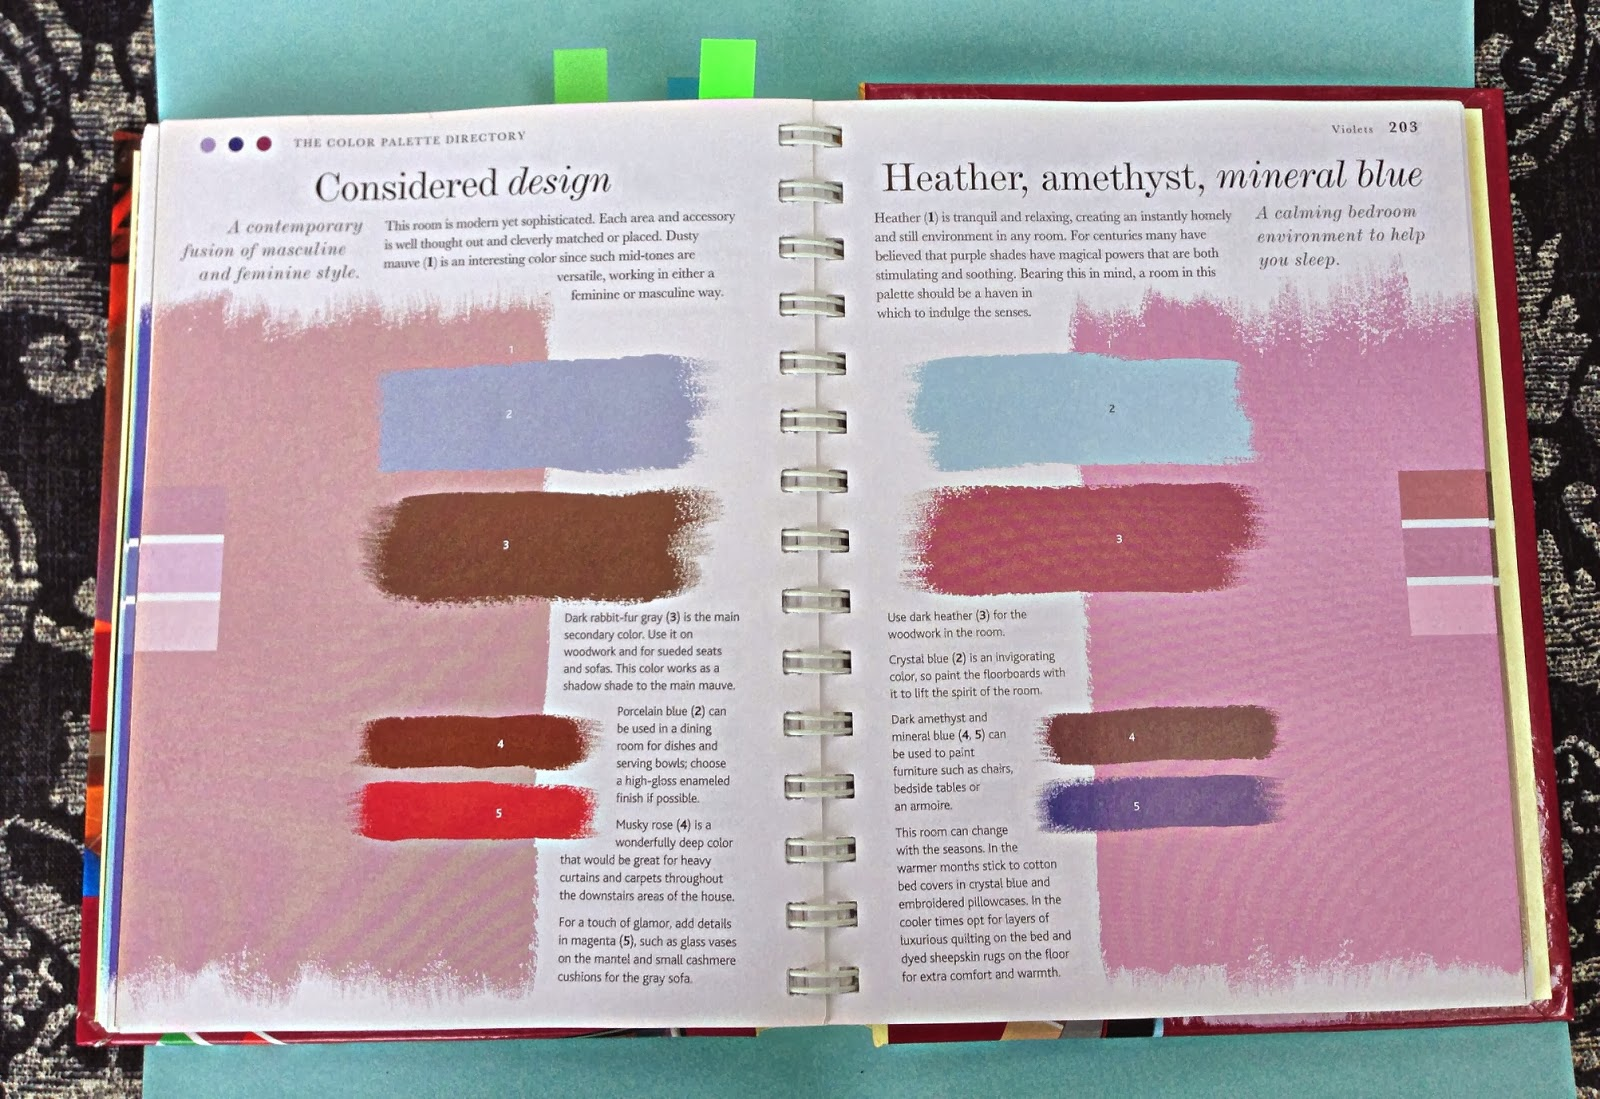 Here are some images from the book so you can see how the color schemes are formatted